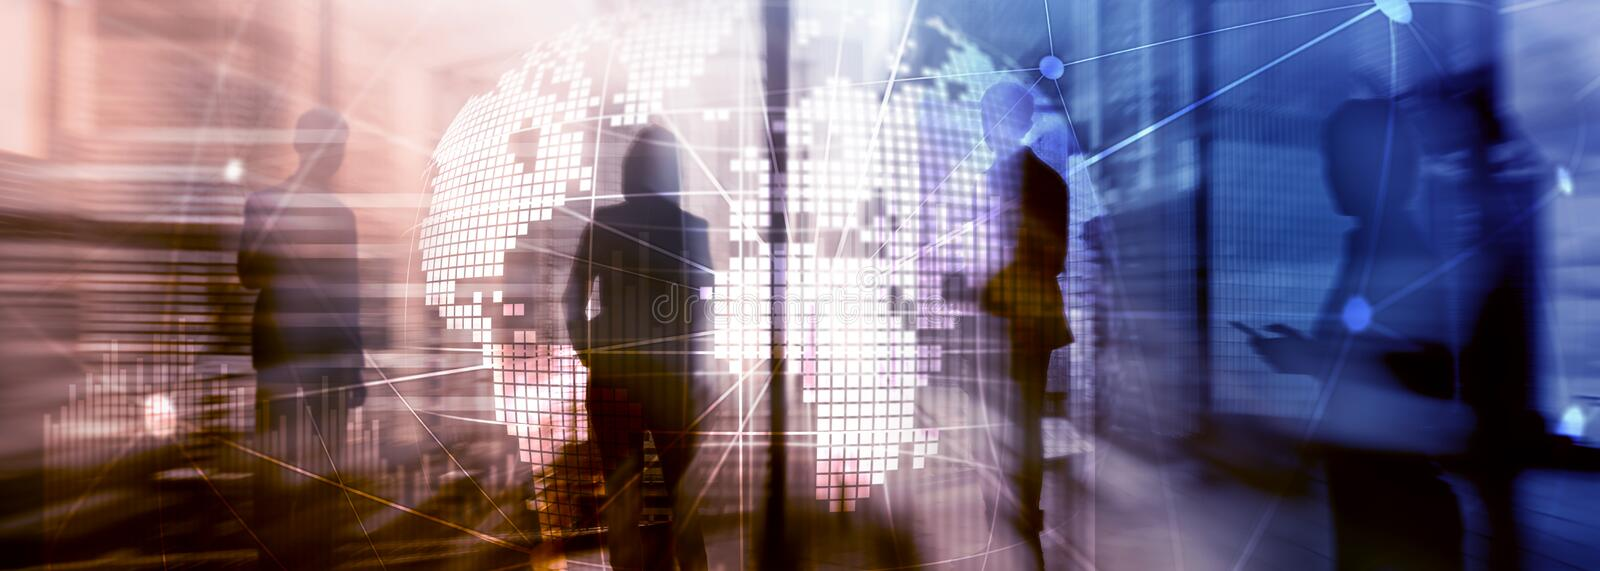 Double exposure mixed media. 3D Earth planet hologram and communication structure. World wide network and globalization concept.  stock image